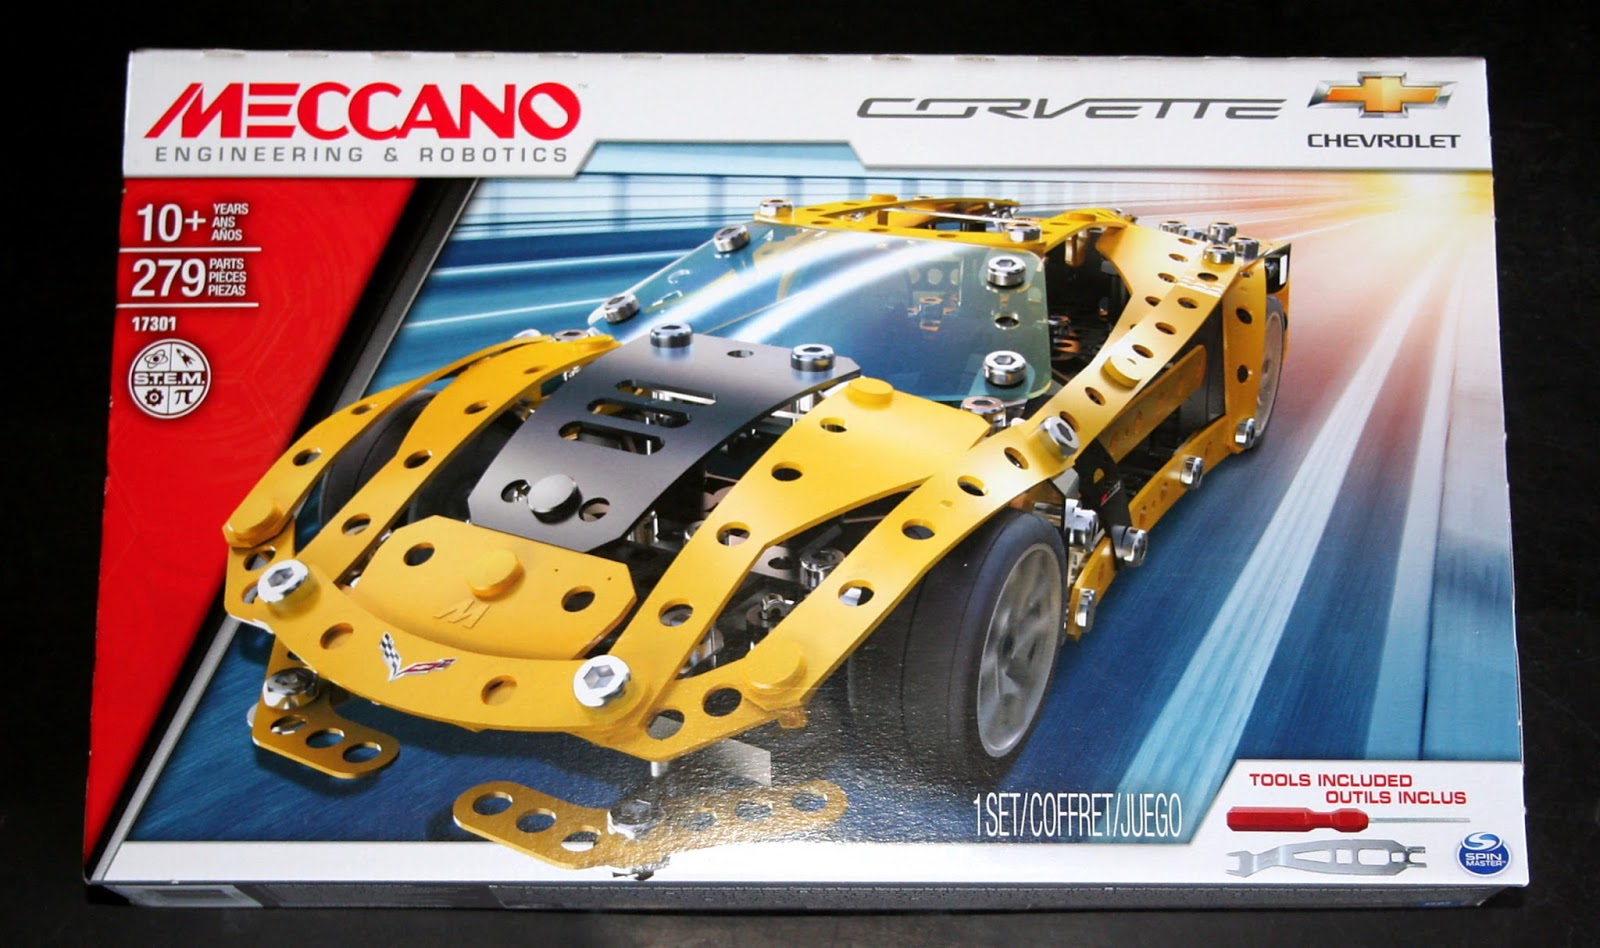 Meccano 6036477 Chevrolet Corvette Car Bakes Books And My Boys Relays Electronics In I Grew Up The World Of Lego Love Watching Kids Do Same However That We Have Is Decades Old So When Were Offered